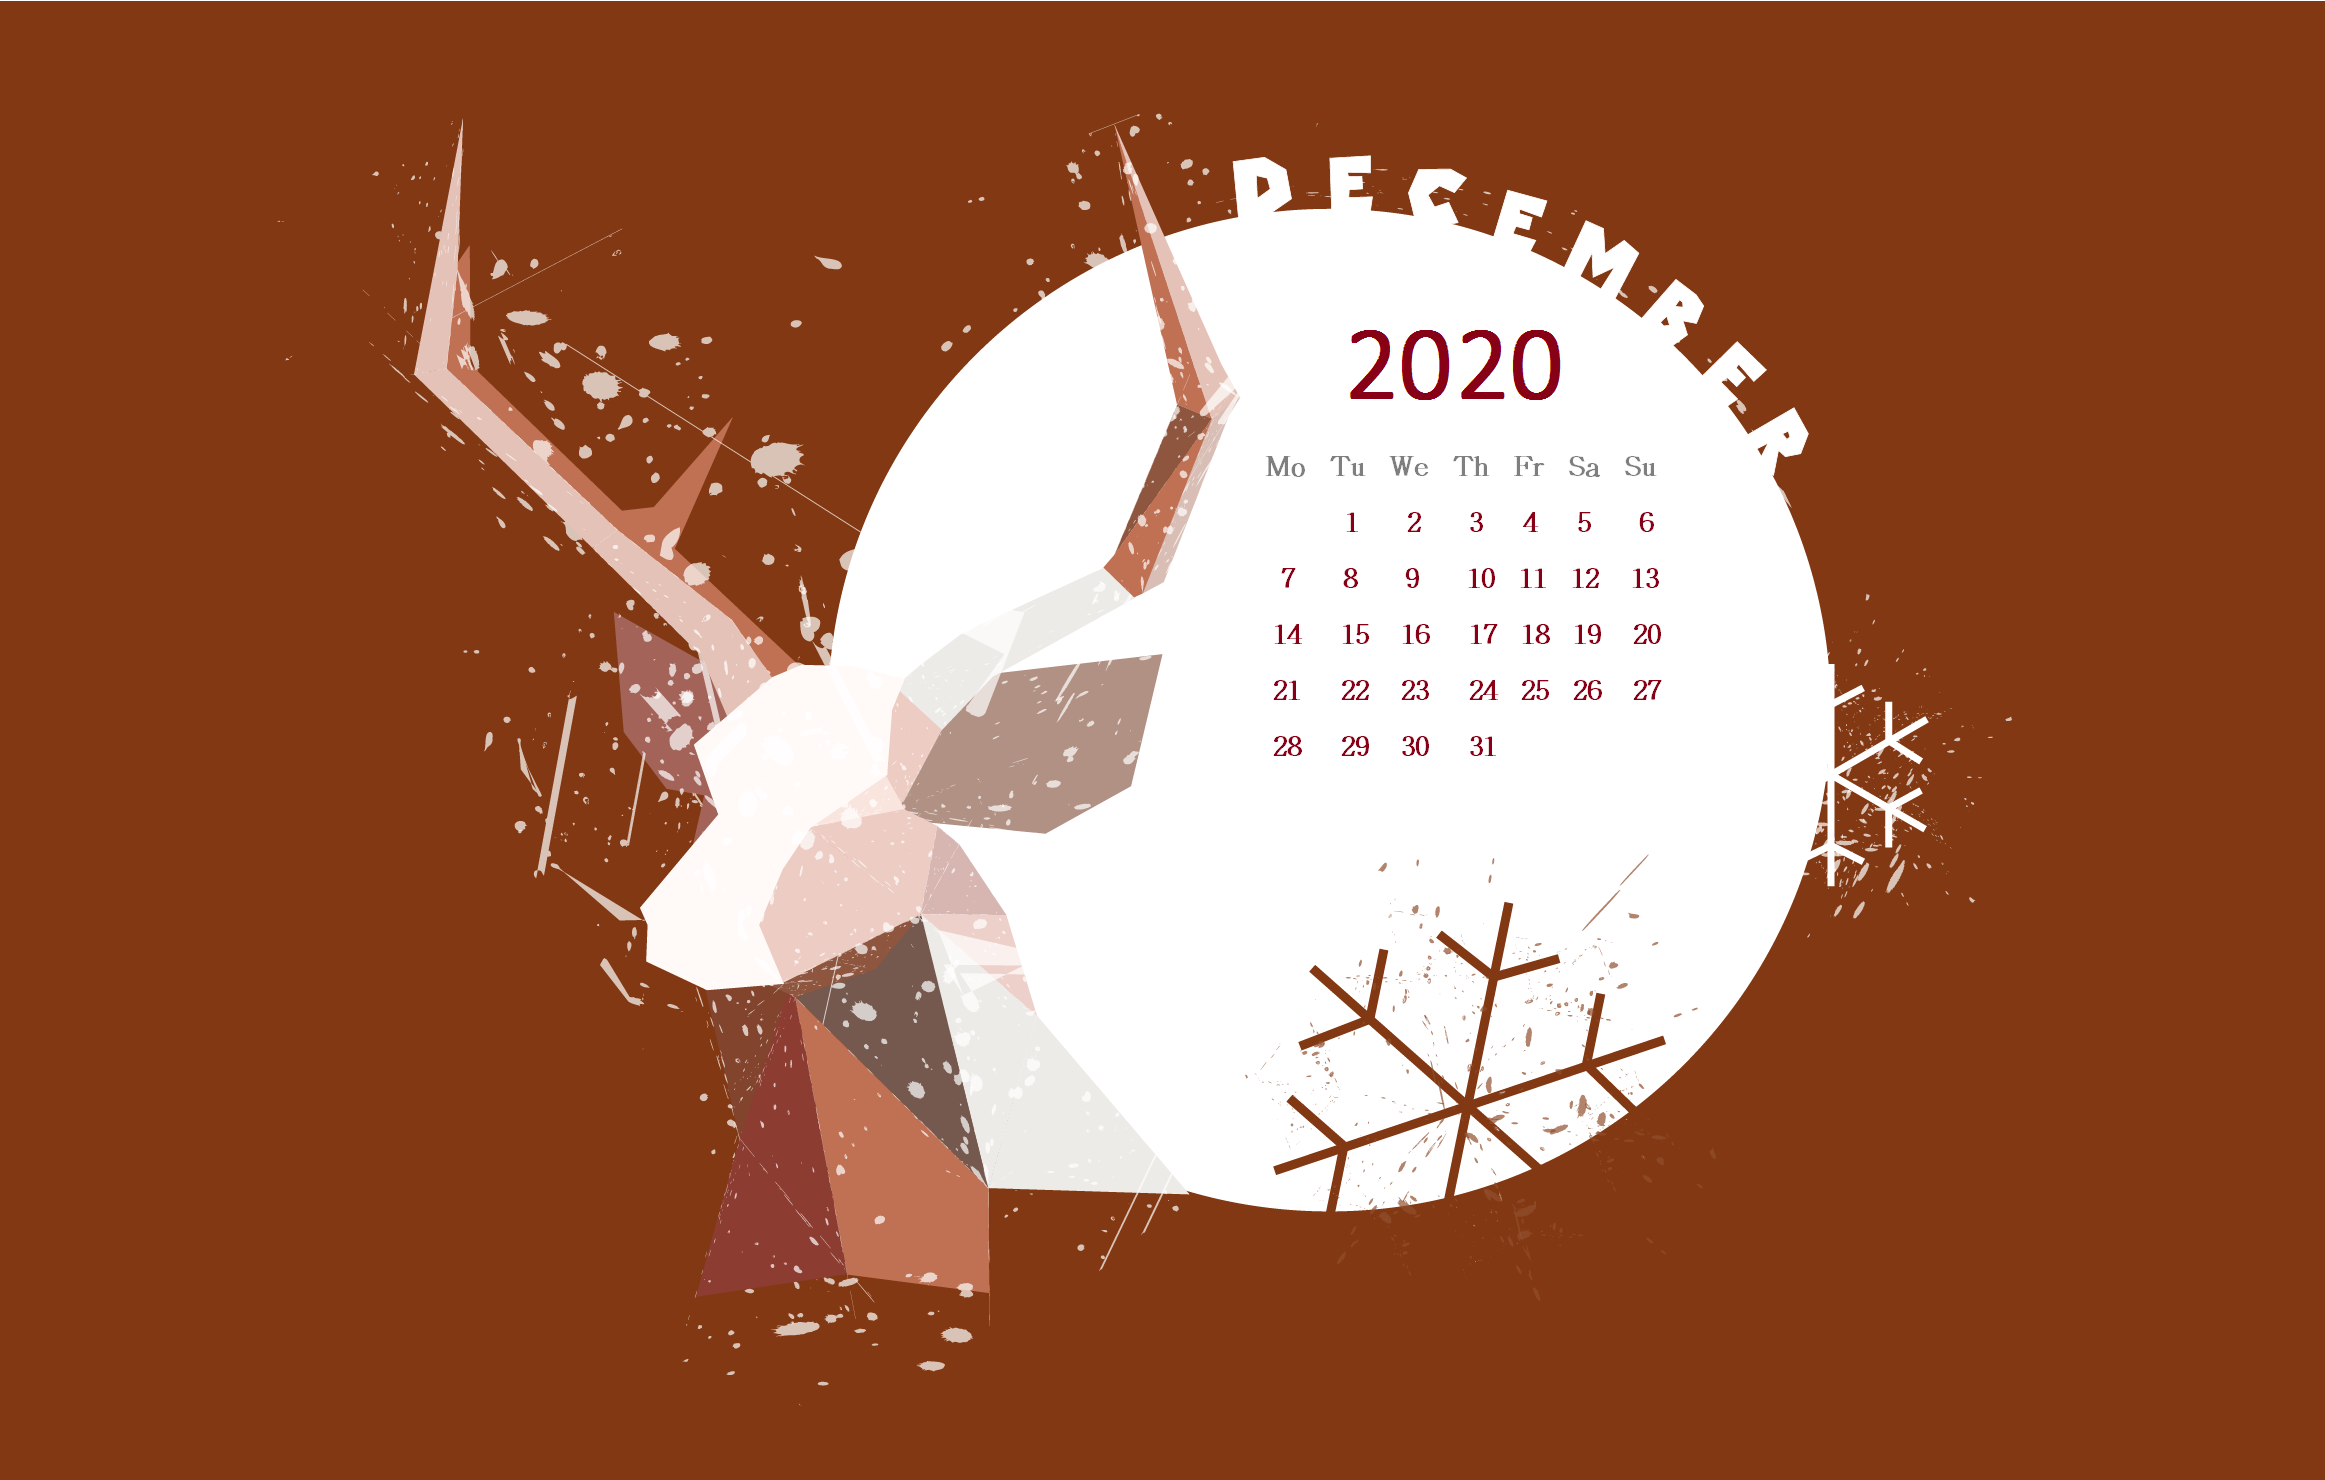 December 2020 Calendar Wallpapers Wallpaper Cave These free desktop cute wallpapers for computer and desktop backgrounds are free to download on your mac, windows, iphone, and android screens. december 2020 calendar wallpapers